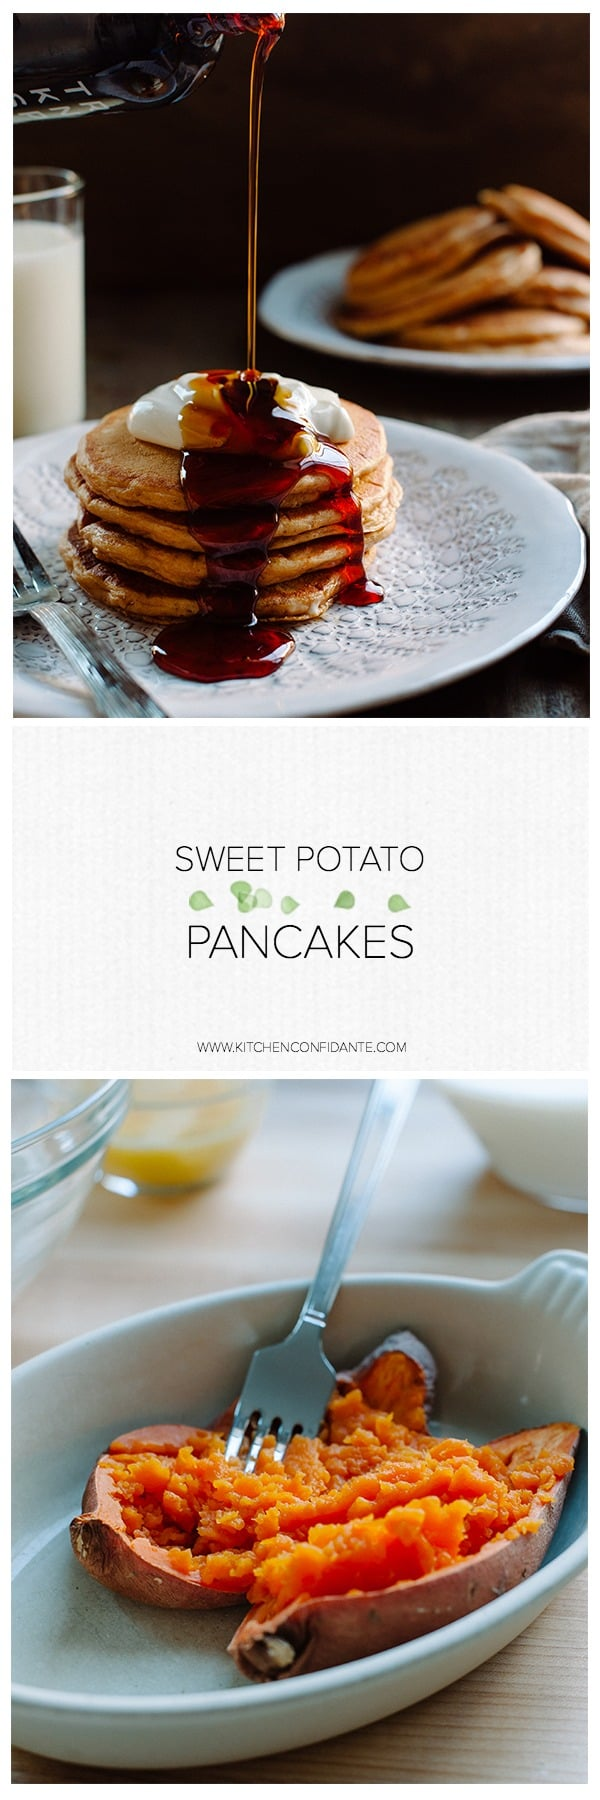 If you love pumpkin pie, sweet potato pie, sweet potato cake or all of the above, you'll LOVE Sweet Potato Pancakes. Also delicious for leftover Thanksgiving sweet potatoes!